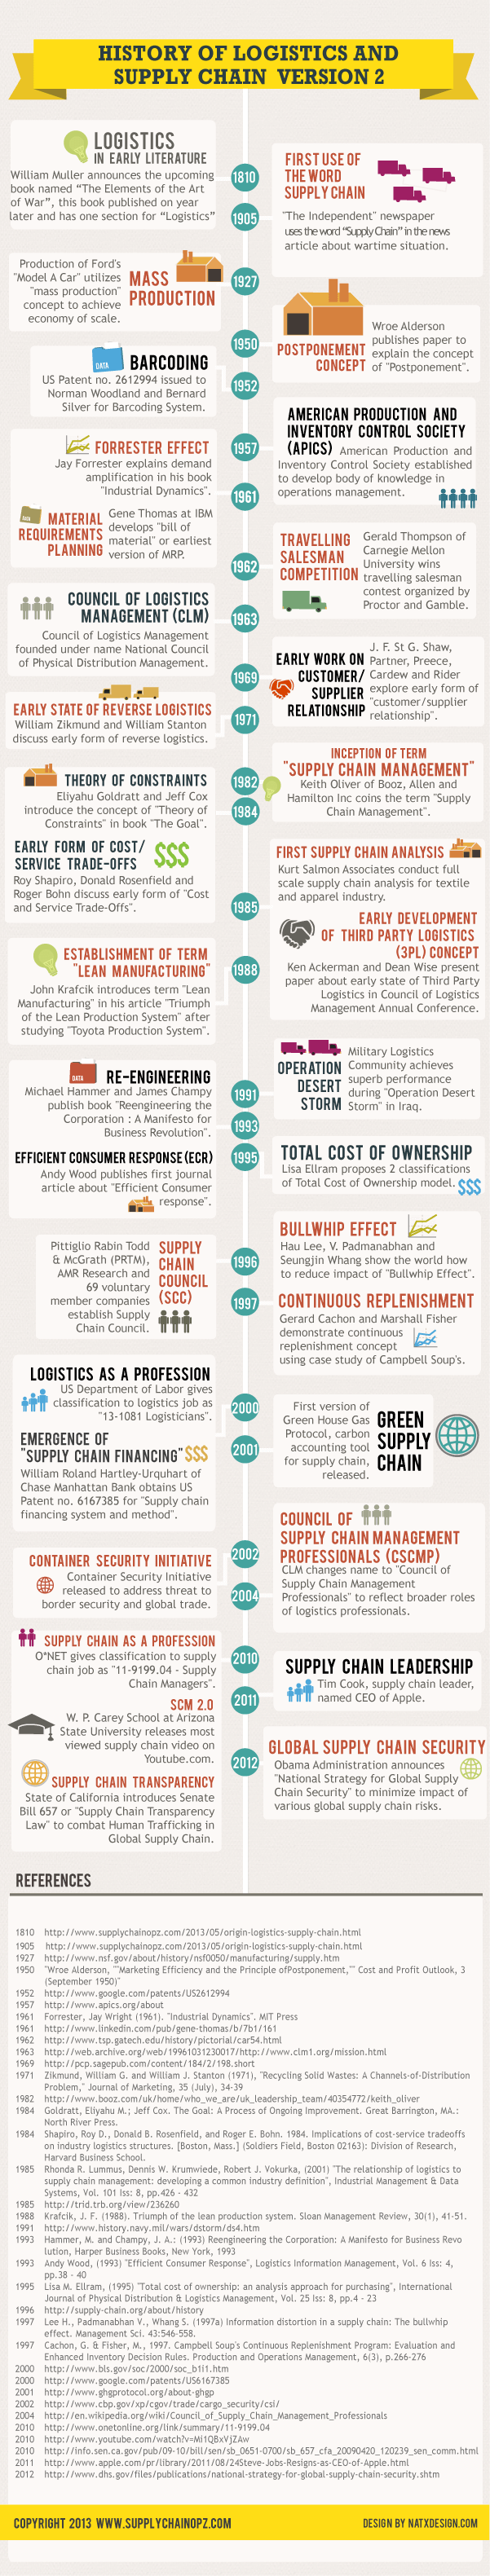 Logistics and Supply Chain Management History Infographic